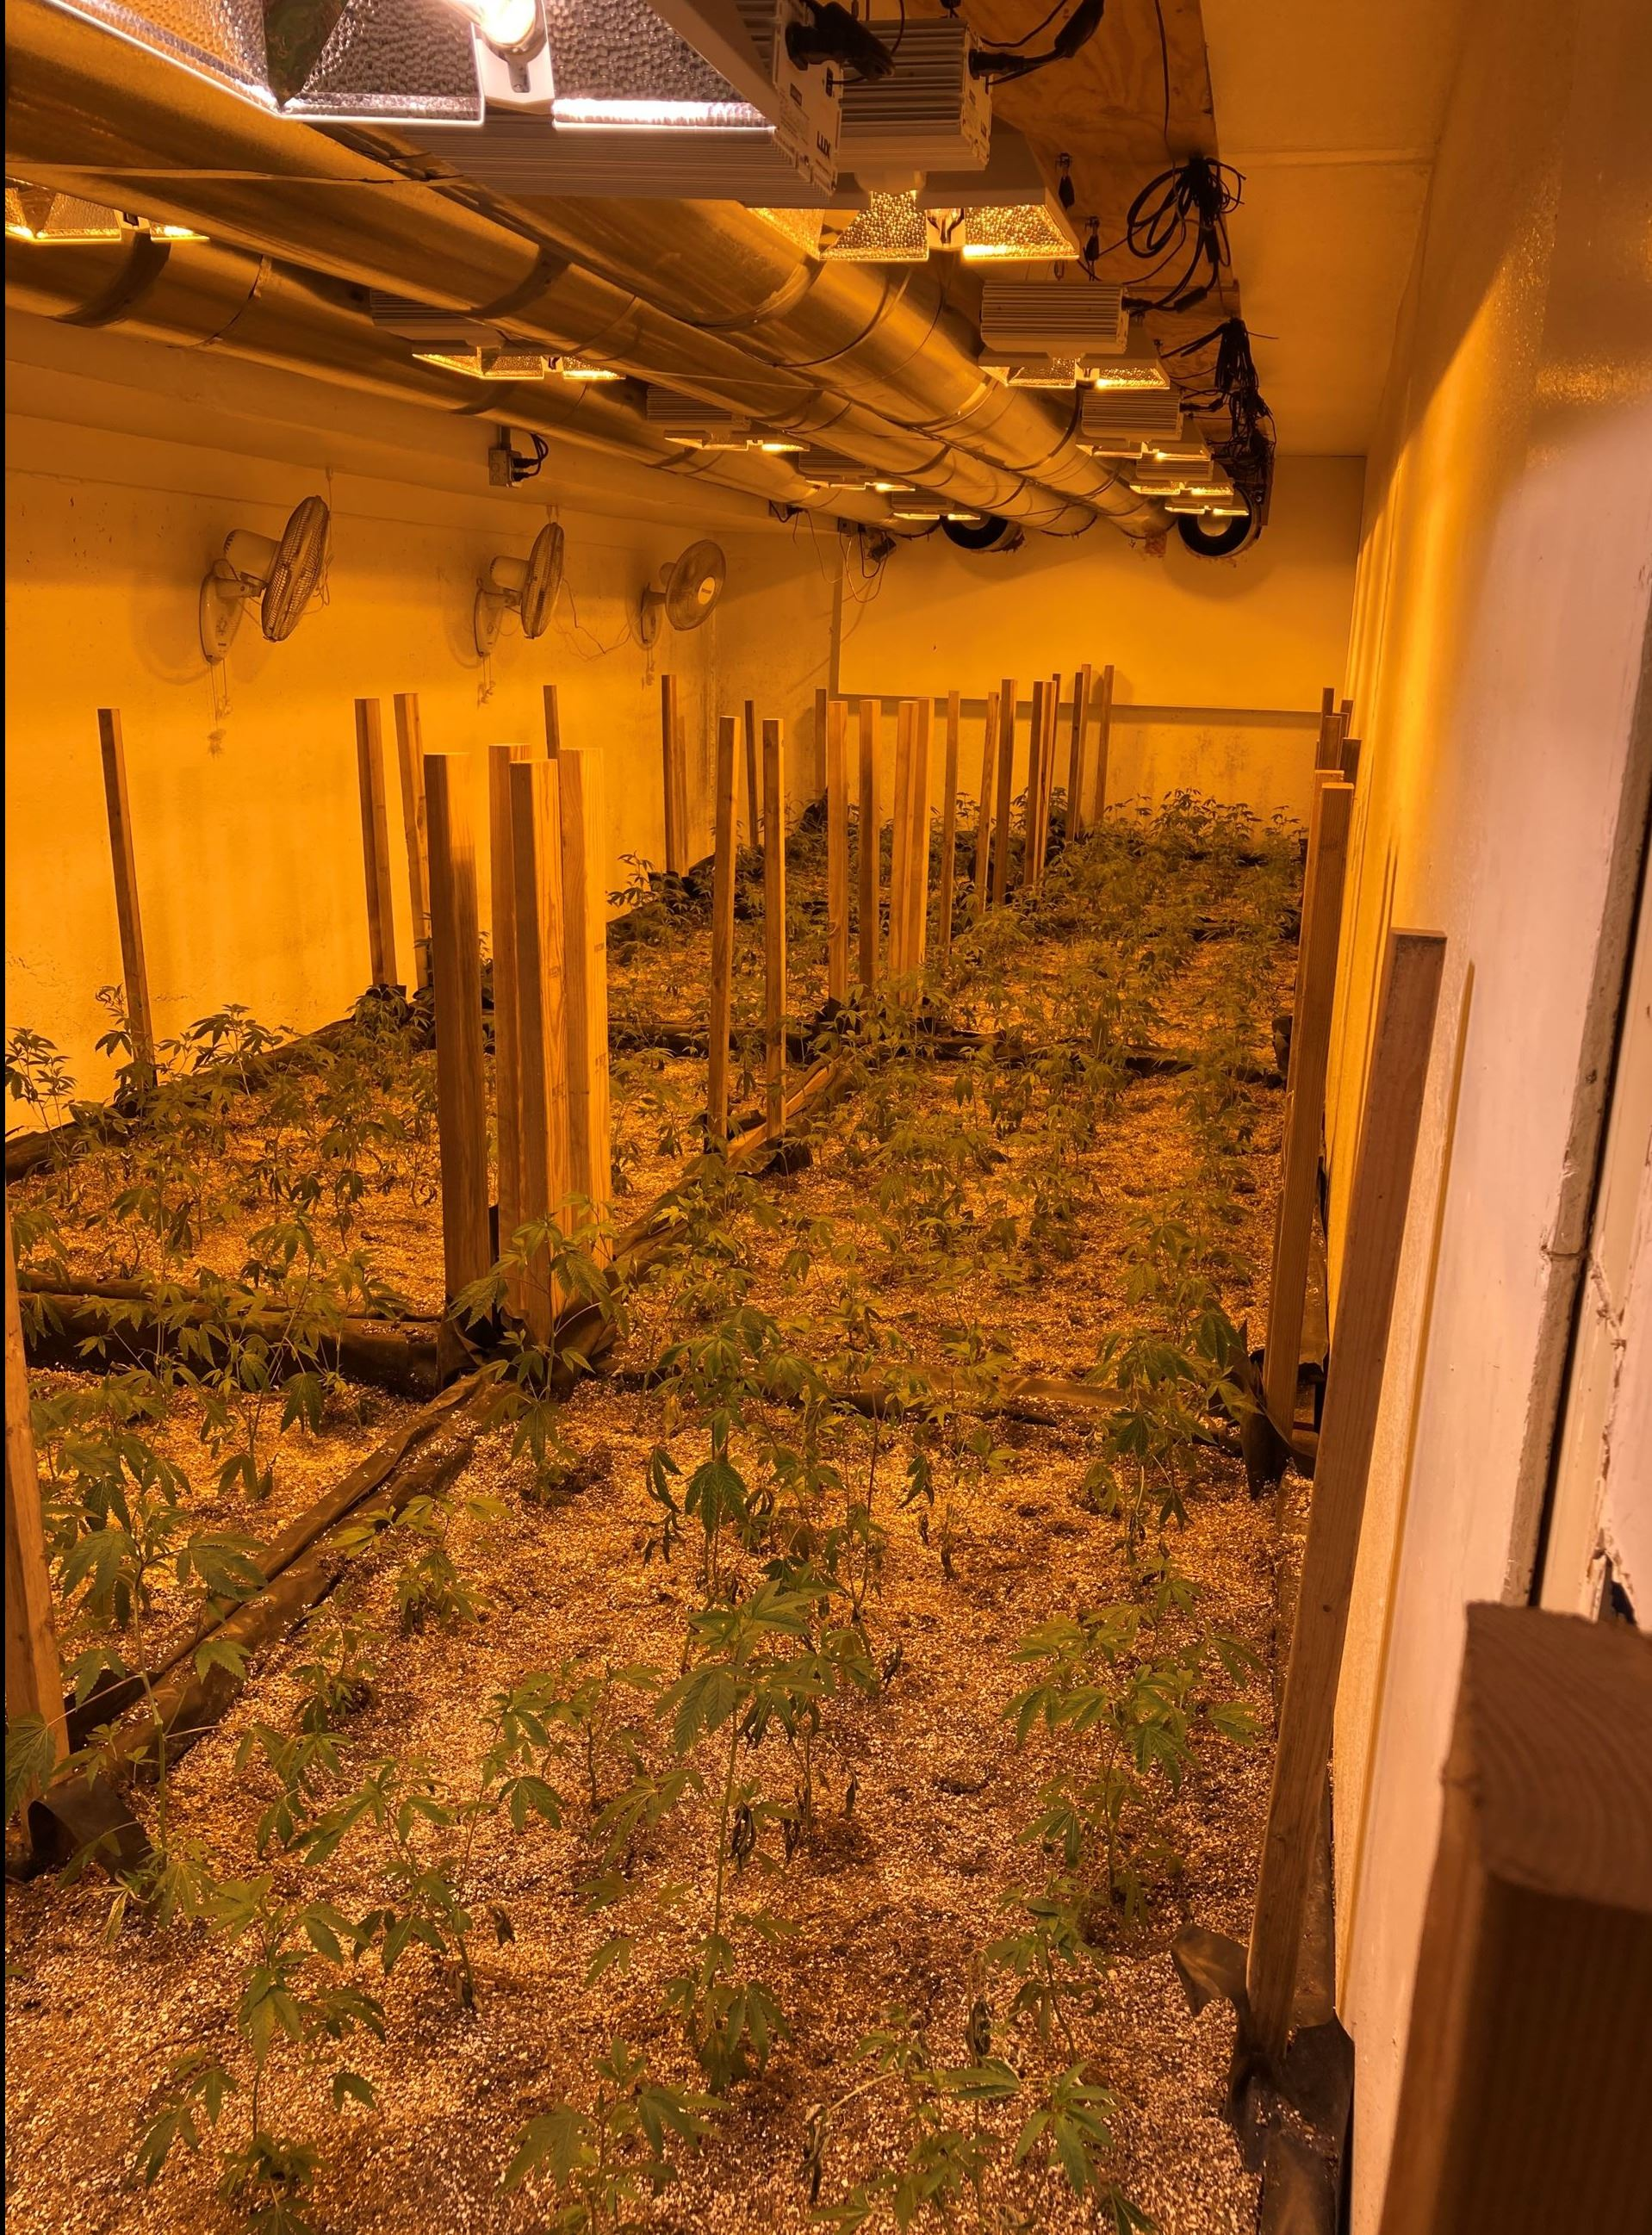 Cannabis plants growing in an illegal indoor cultivation site